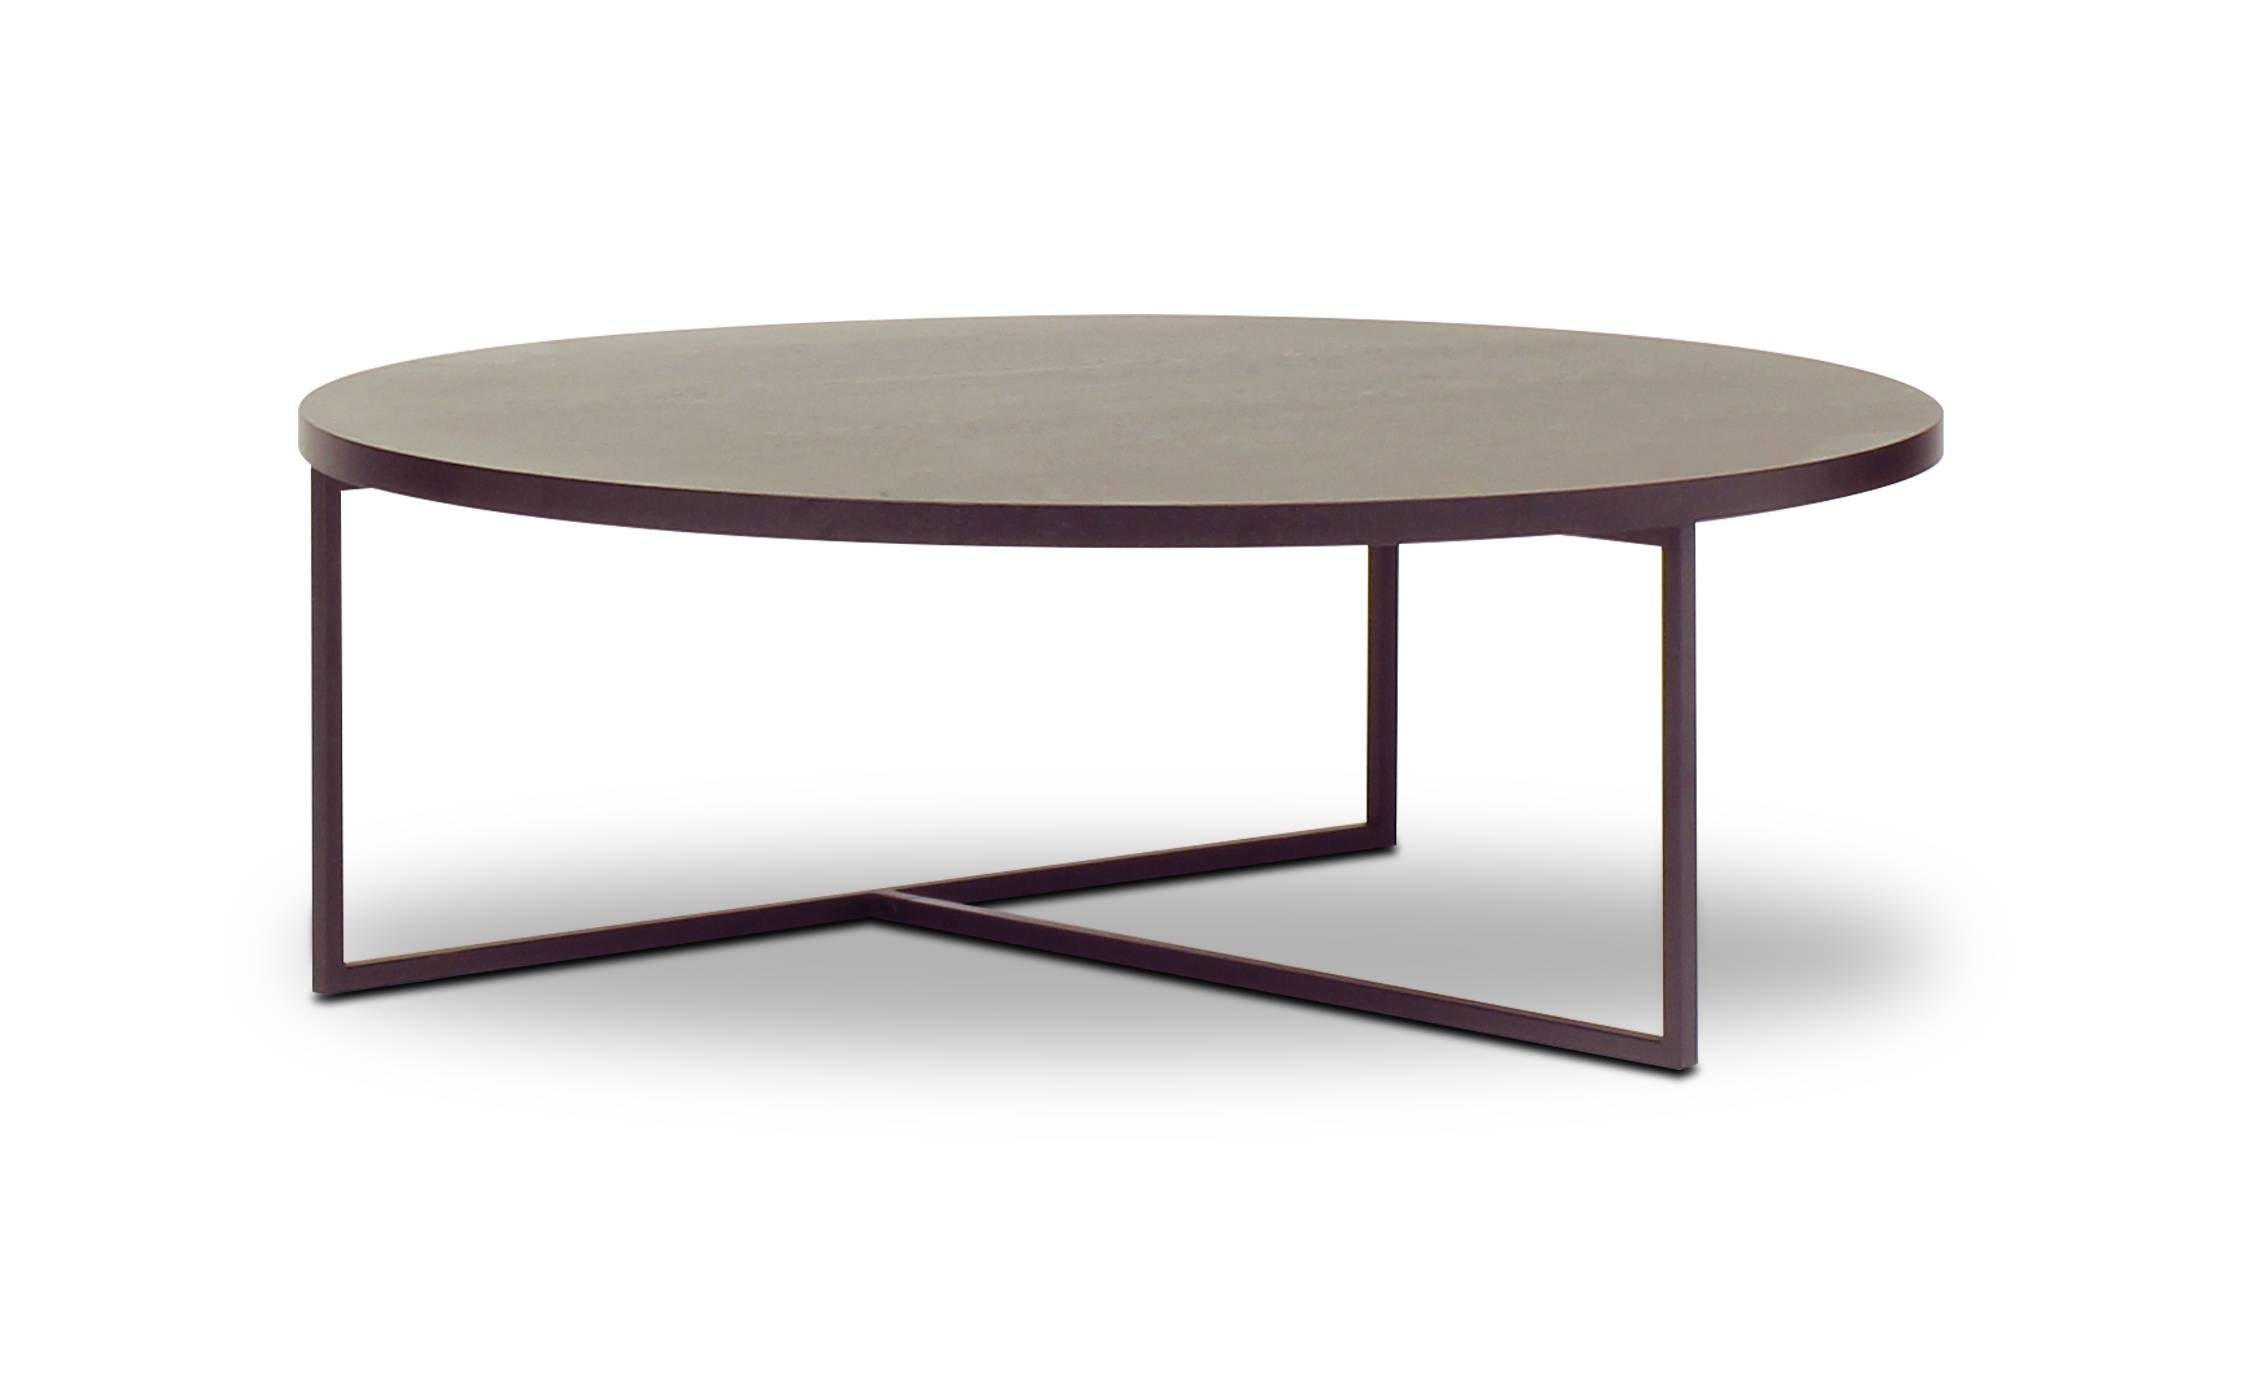 Best 30 of Lacquer Coffee Tables